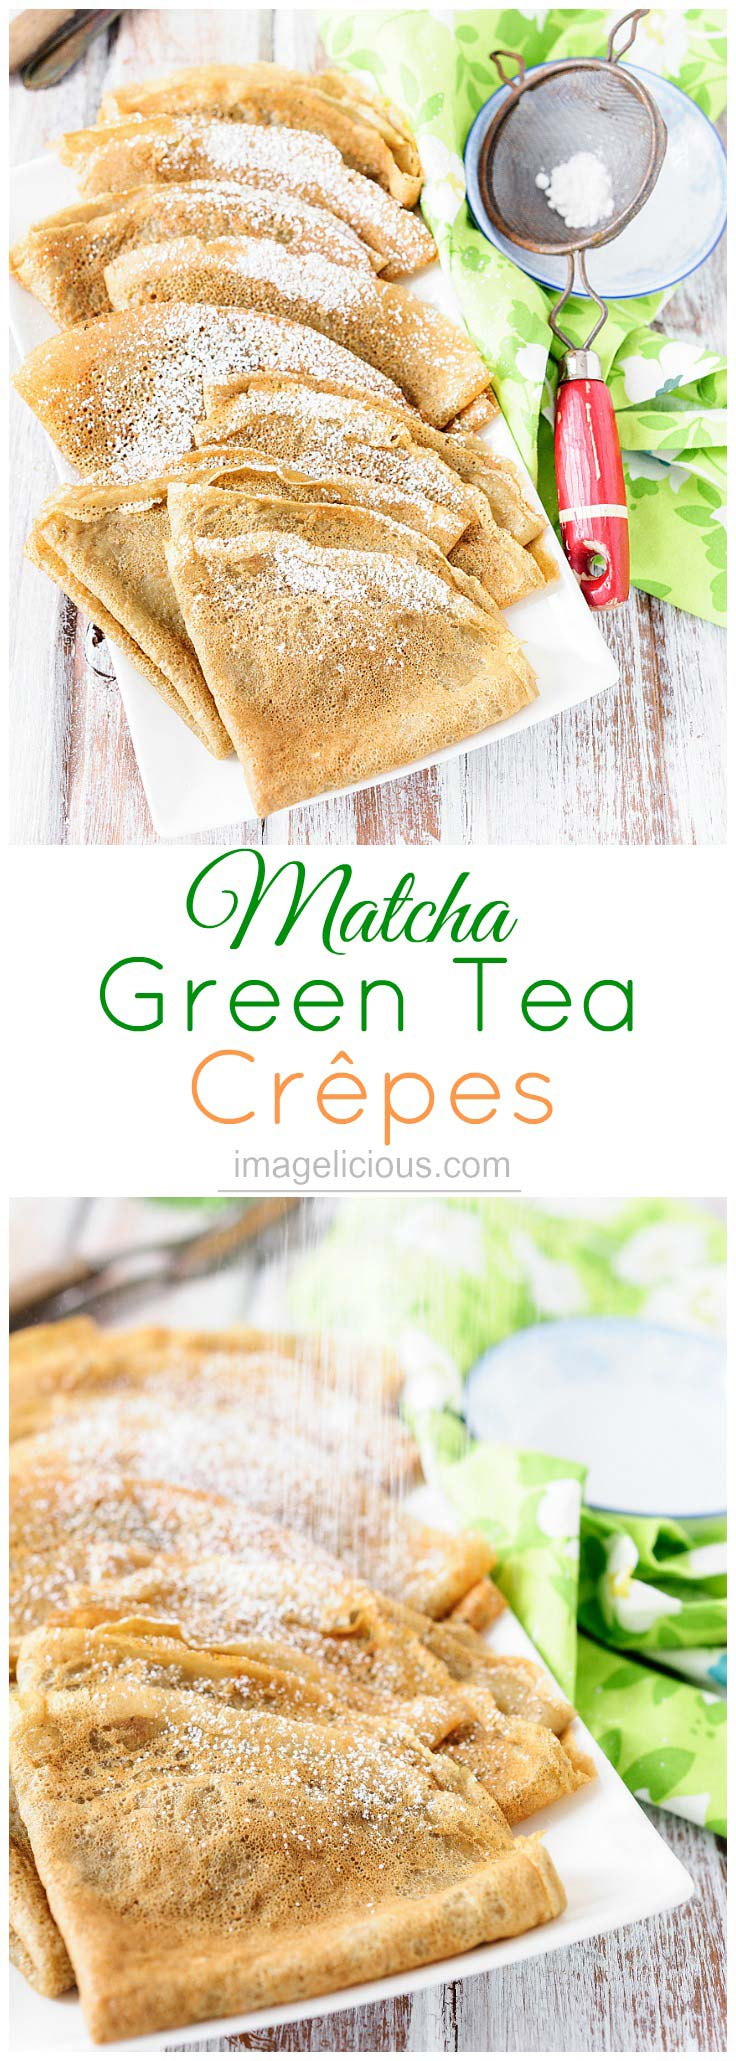 These Matcha Green Tea Crepes are delicate and thin. Flavoured with a hint of floral matcha green tea. Perfect for a lazy weekend breakfast or spring dessert. Great for Easter brunch | Imagelicious